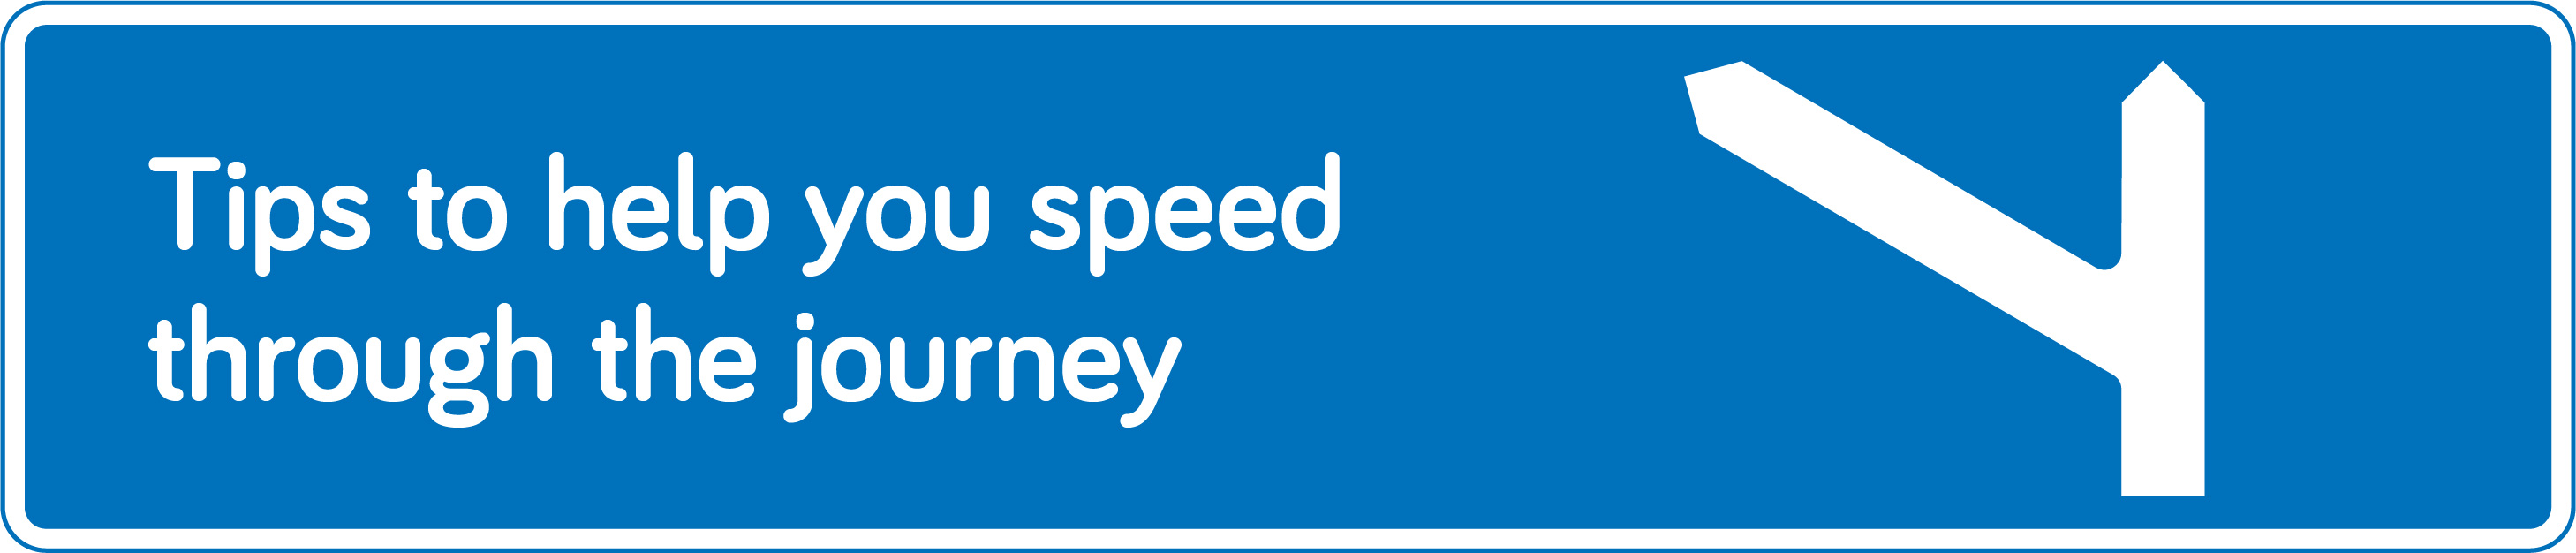 Top tips to help you speed through the journey